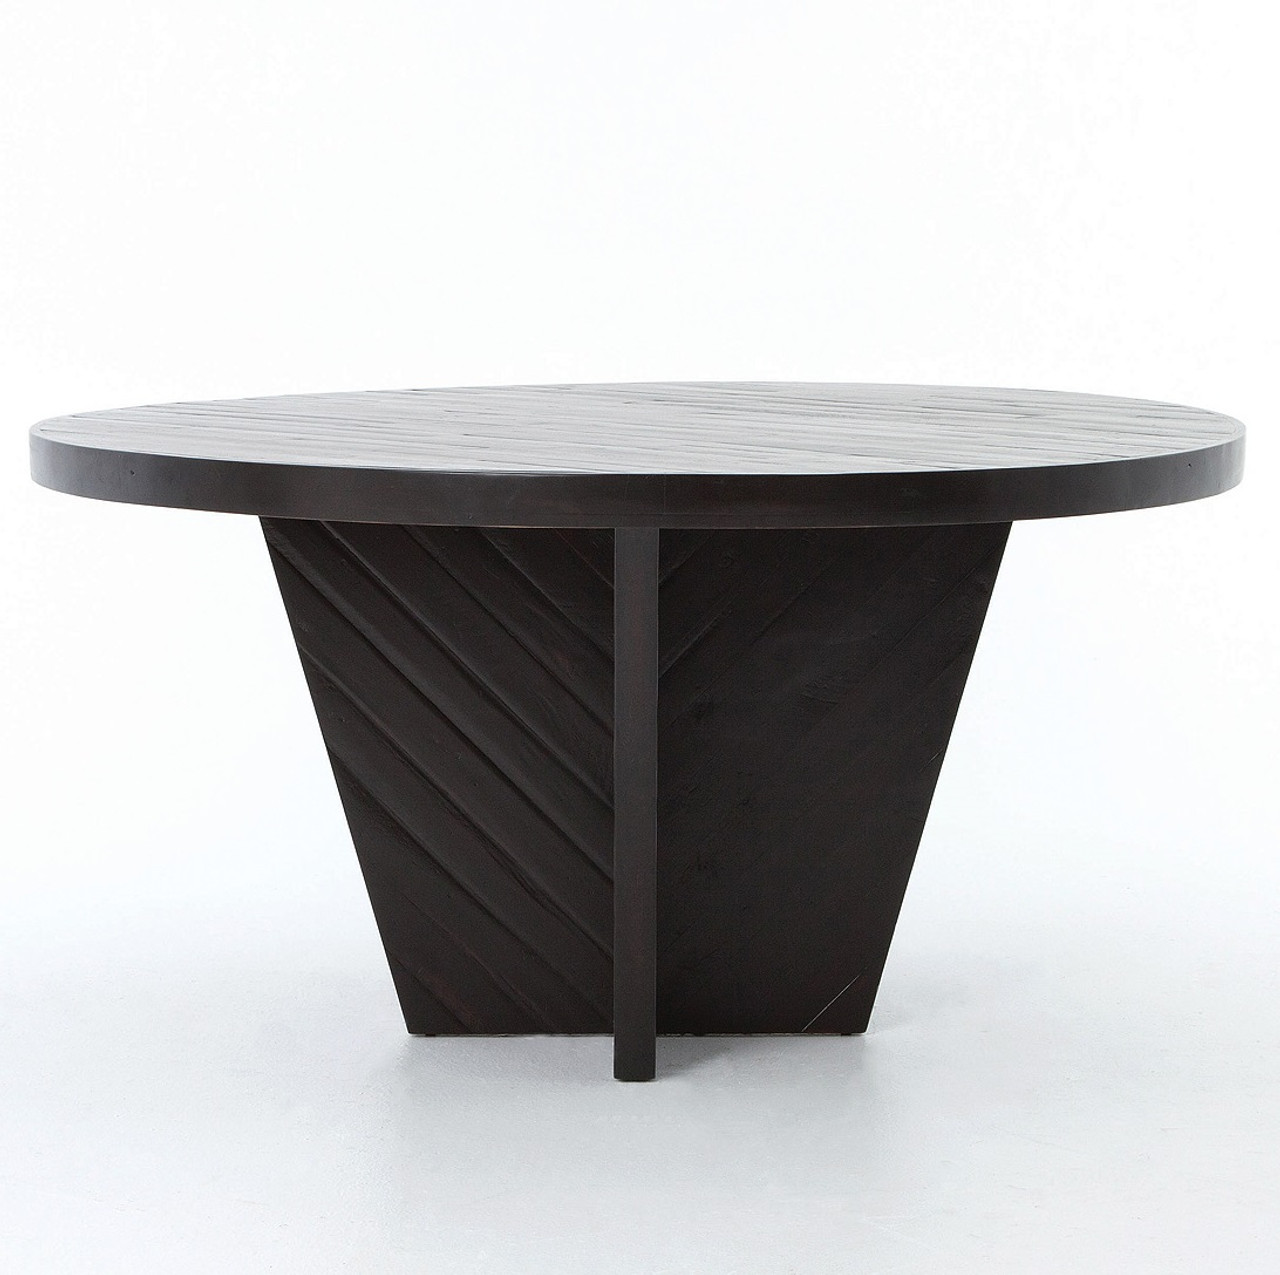 Wood Round Dining Table: Burnished Black Rustic Wood Round Dining Table 59""